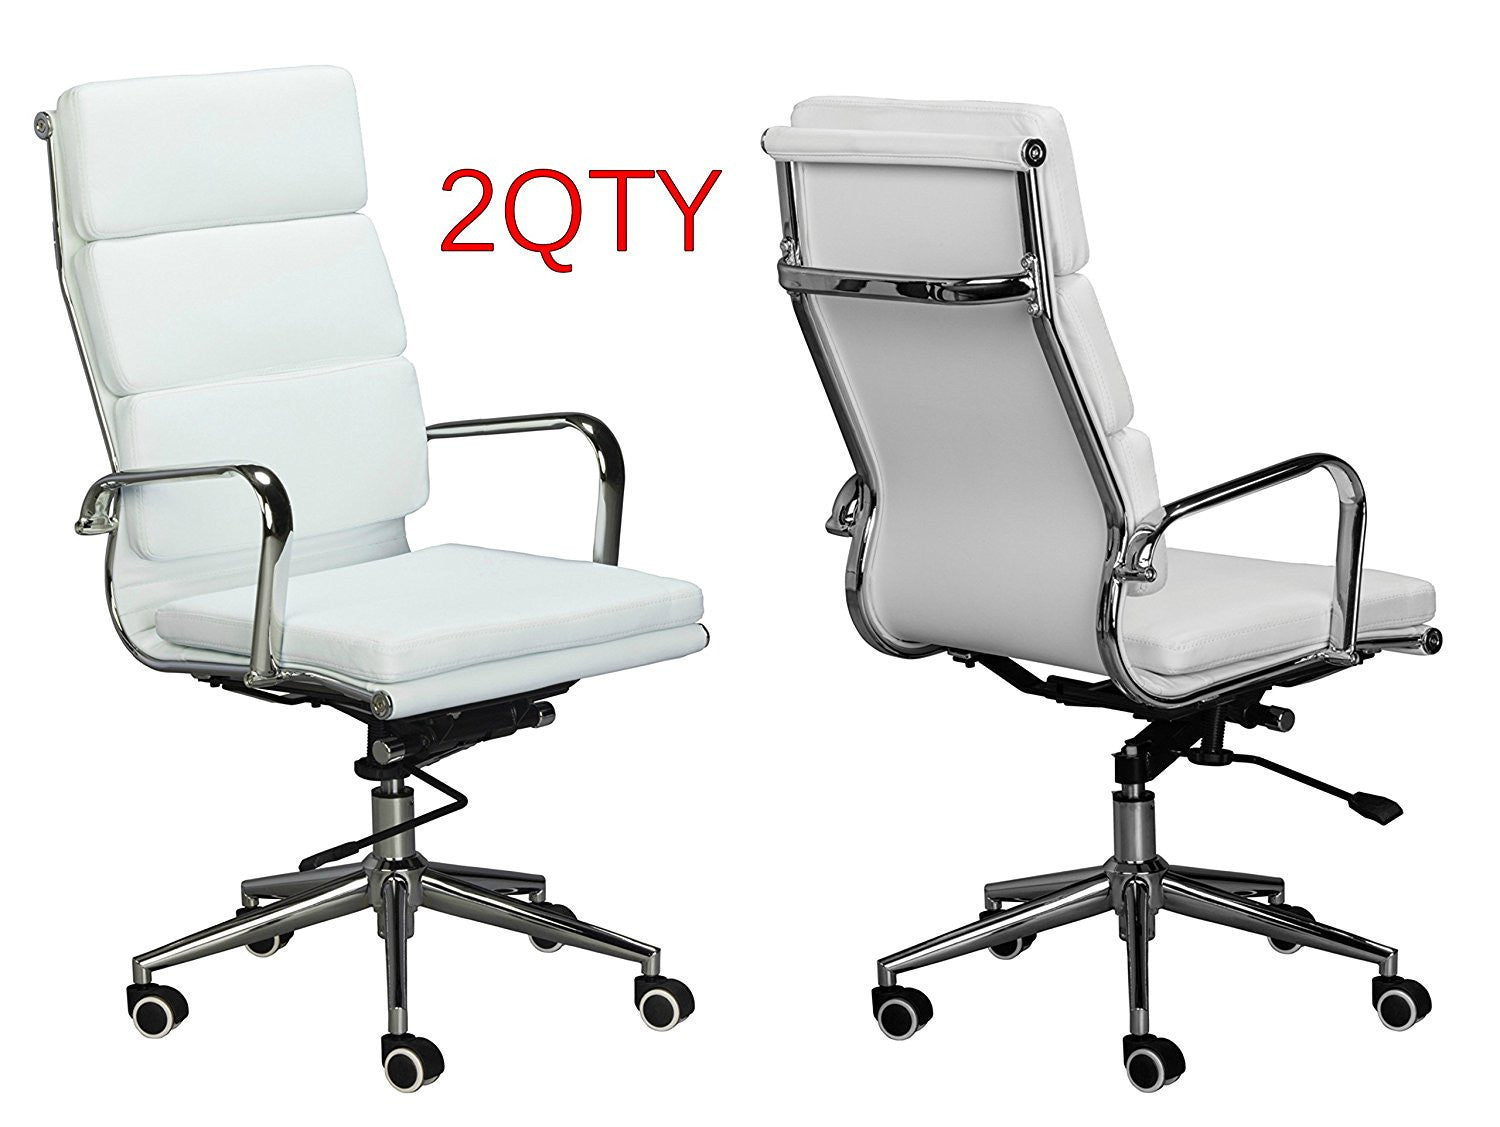 High Quality Classic Replica High Back Office Chair (Set Of 2)   White Vegan Leather,  Thick High Density Foam, Stabilizing Bar Swivel U0026 Deluxe Tilting Mechanism